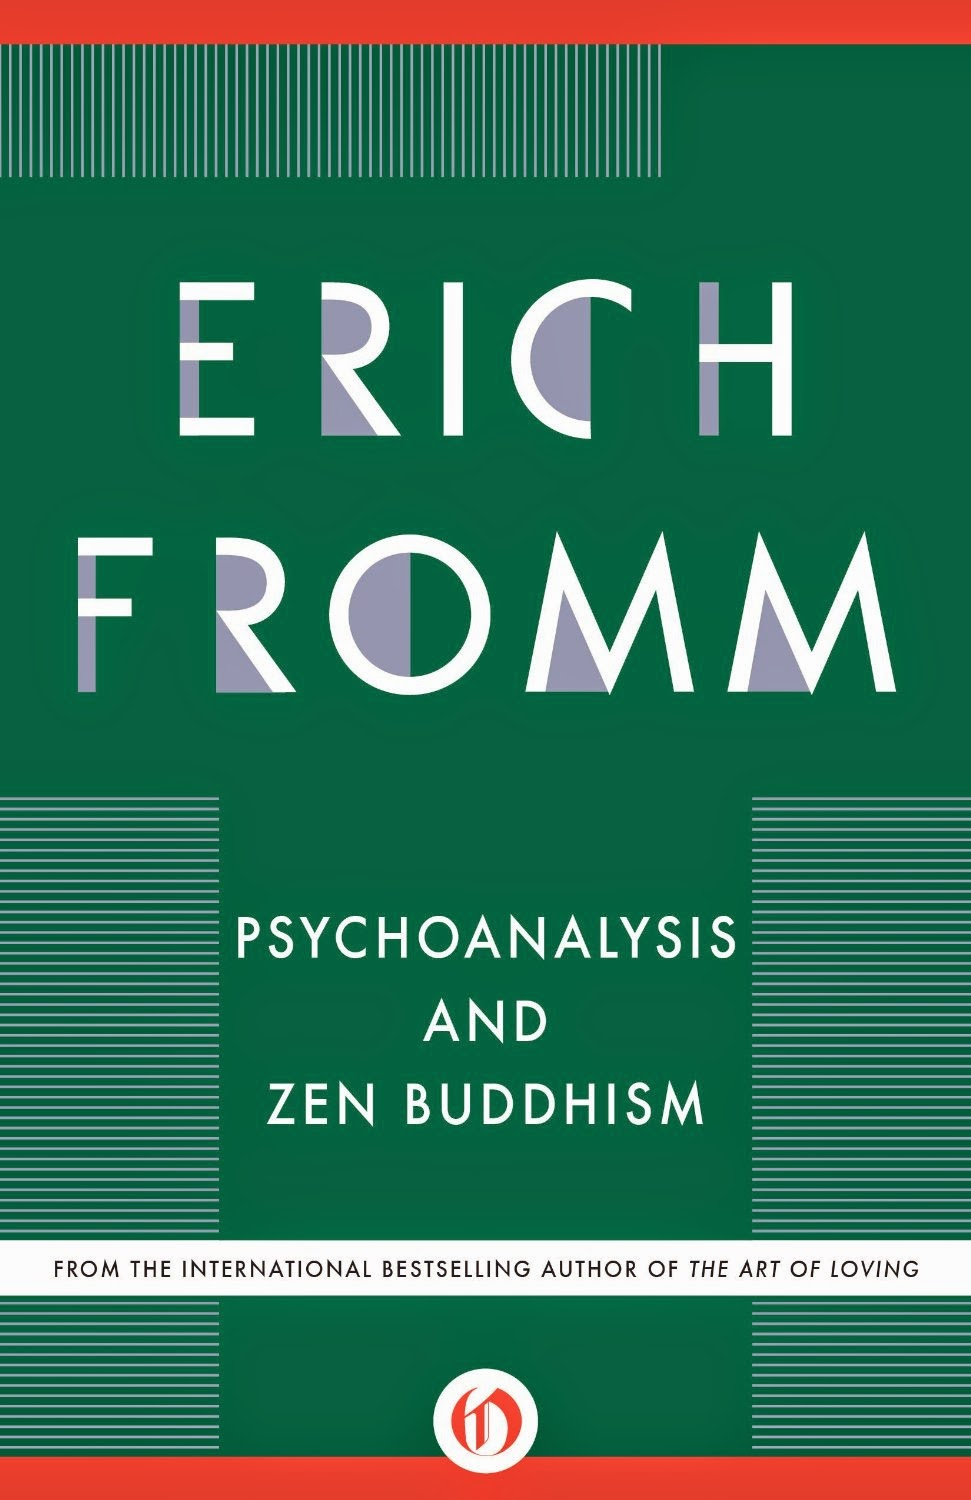 freud quotes: Psychoanalysis and Zen Buddhism by Erich Fromm